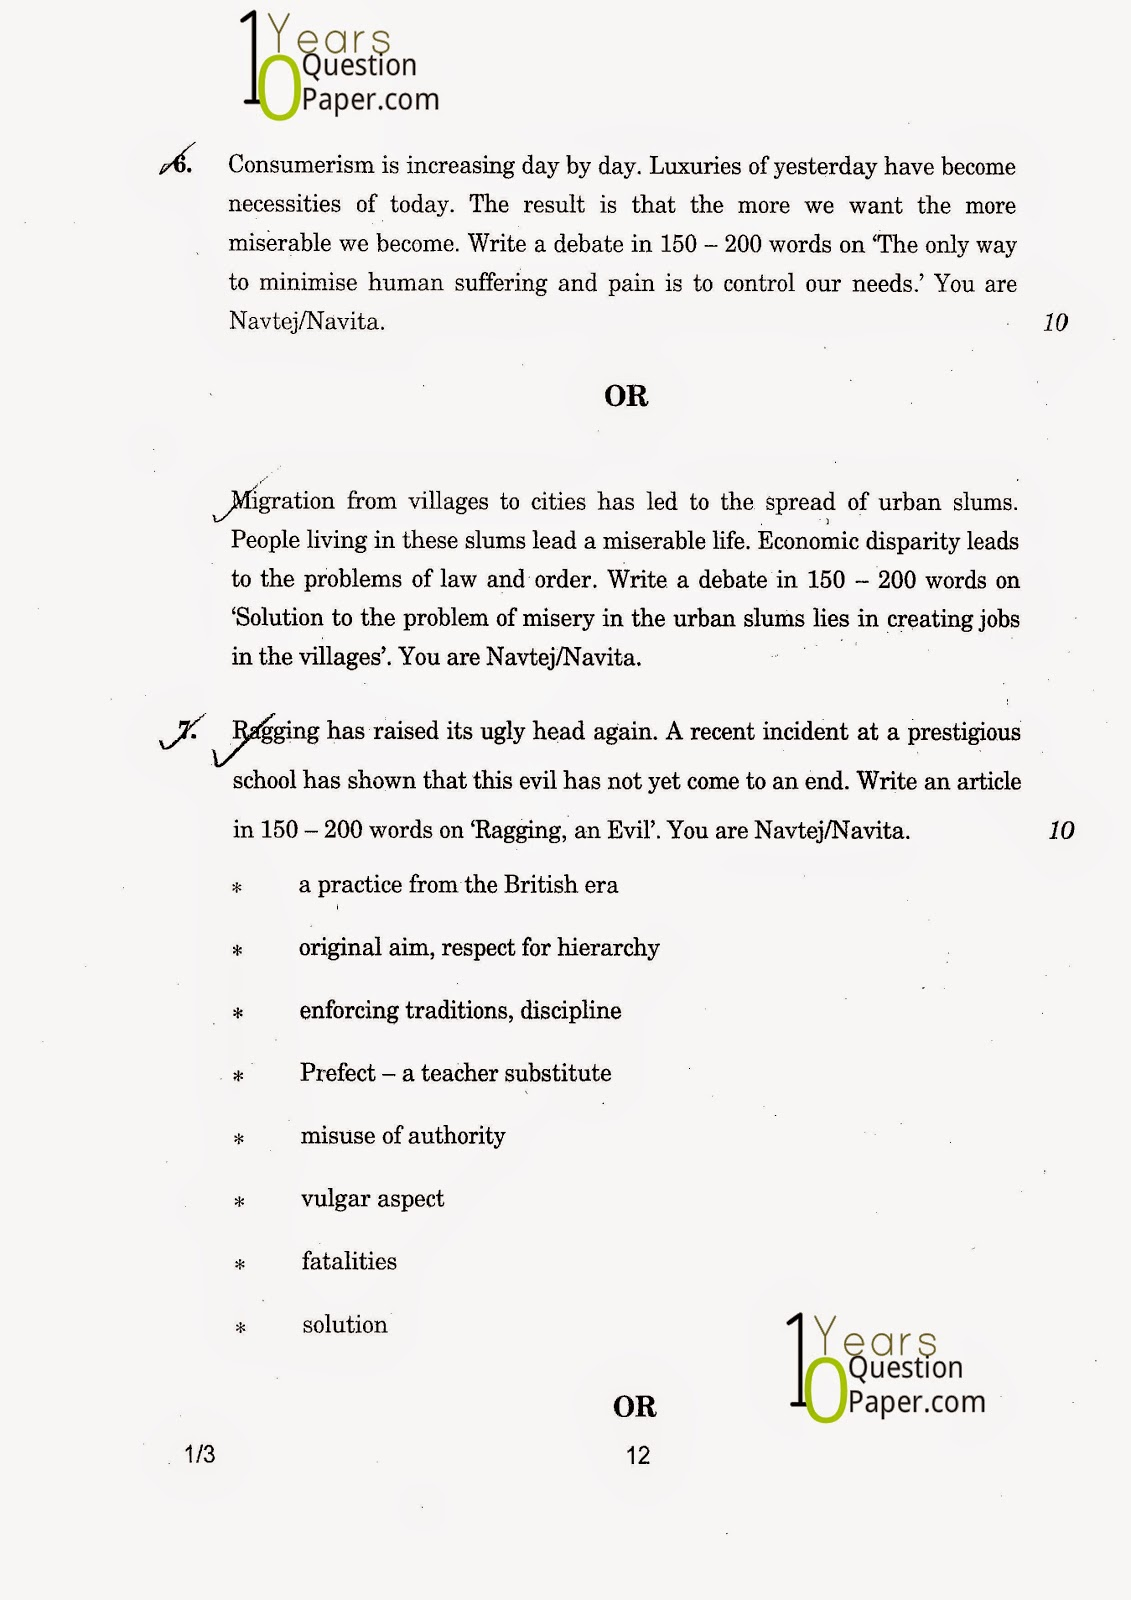 007 Research Paper Cbse English Set Jpg For Writing Papers Adrian Wallwork Marvelous Pdf 2011 Full